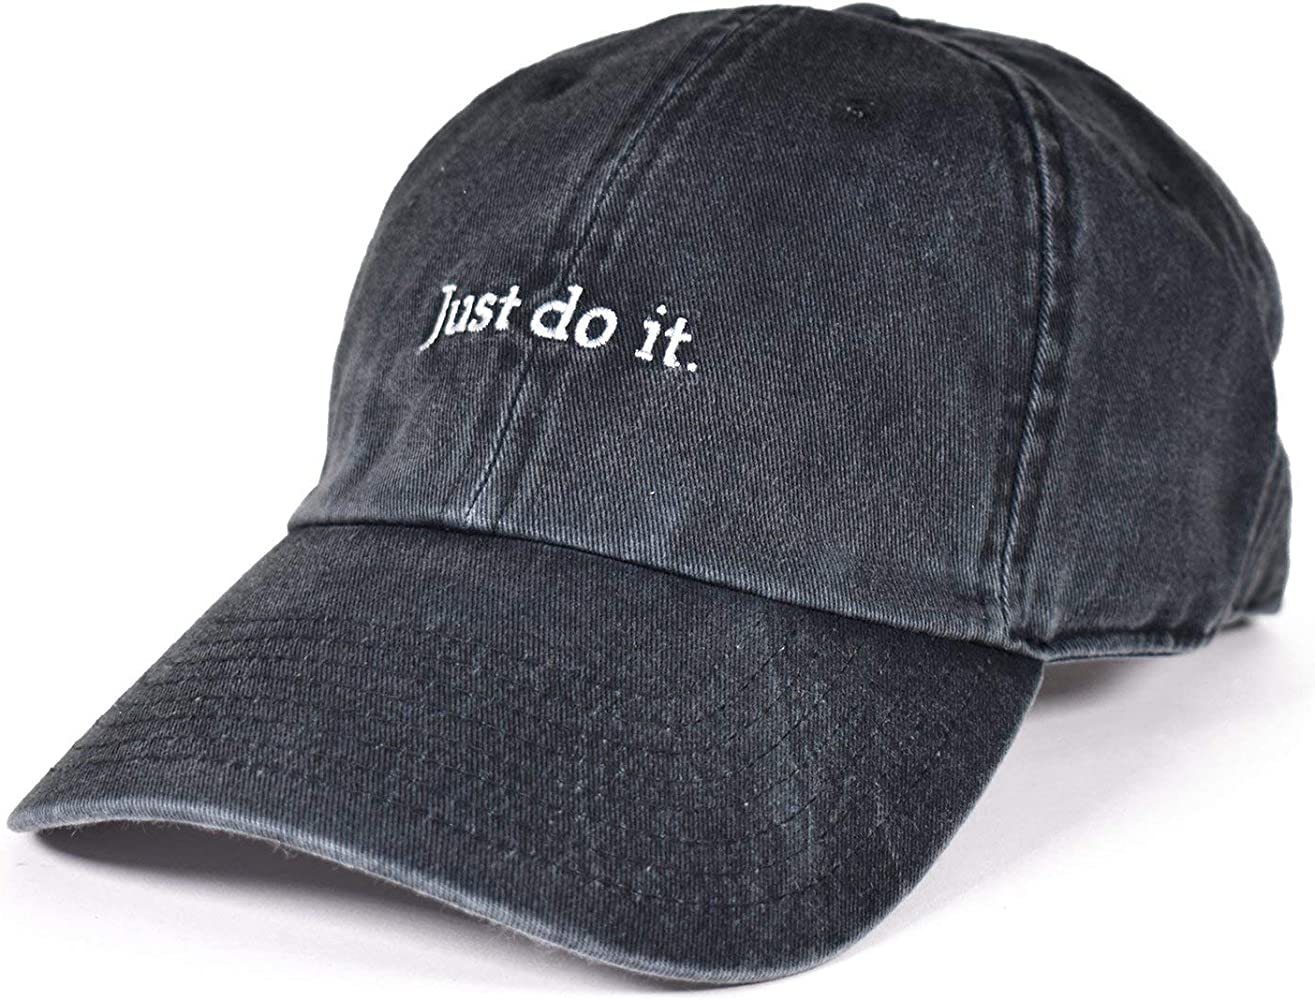 1a860b44b813f Sportswear H86 Just Do It Strapback